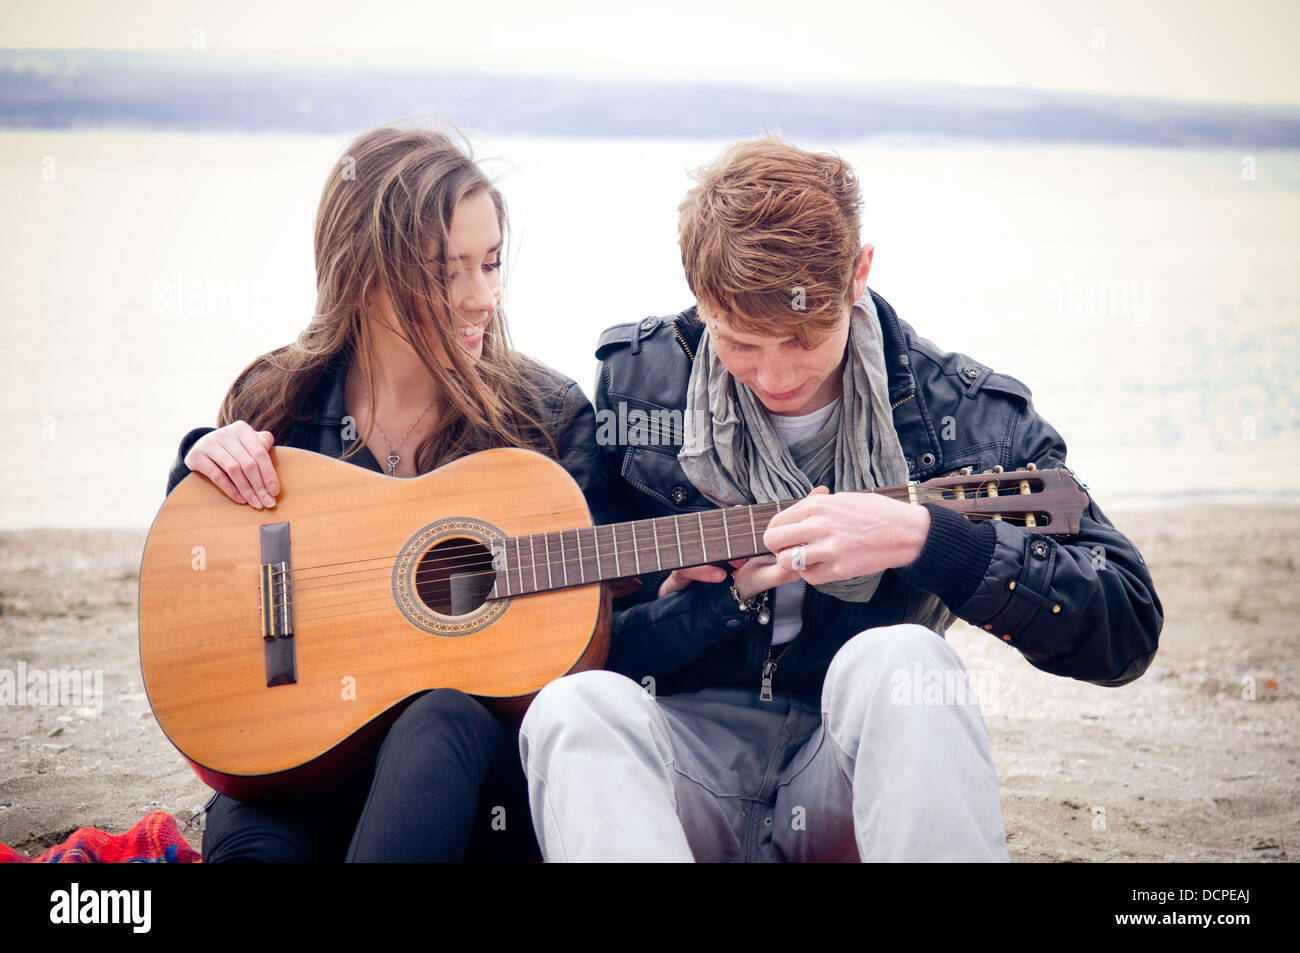 Young girl with acoustic guitar and her boyfriend on the bach - Stock Image